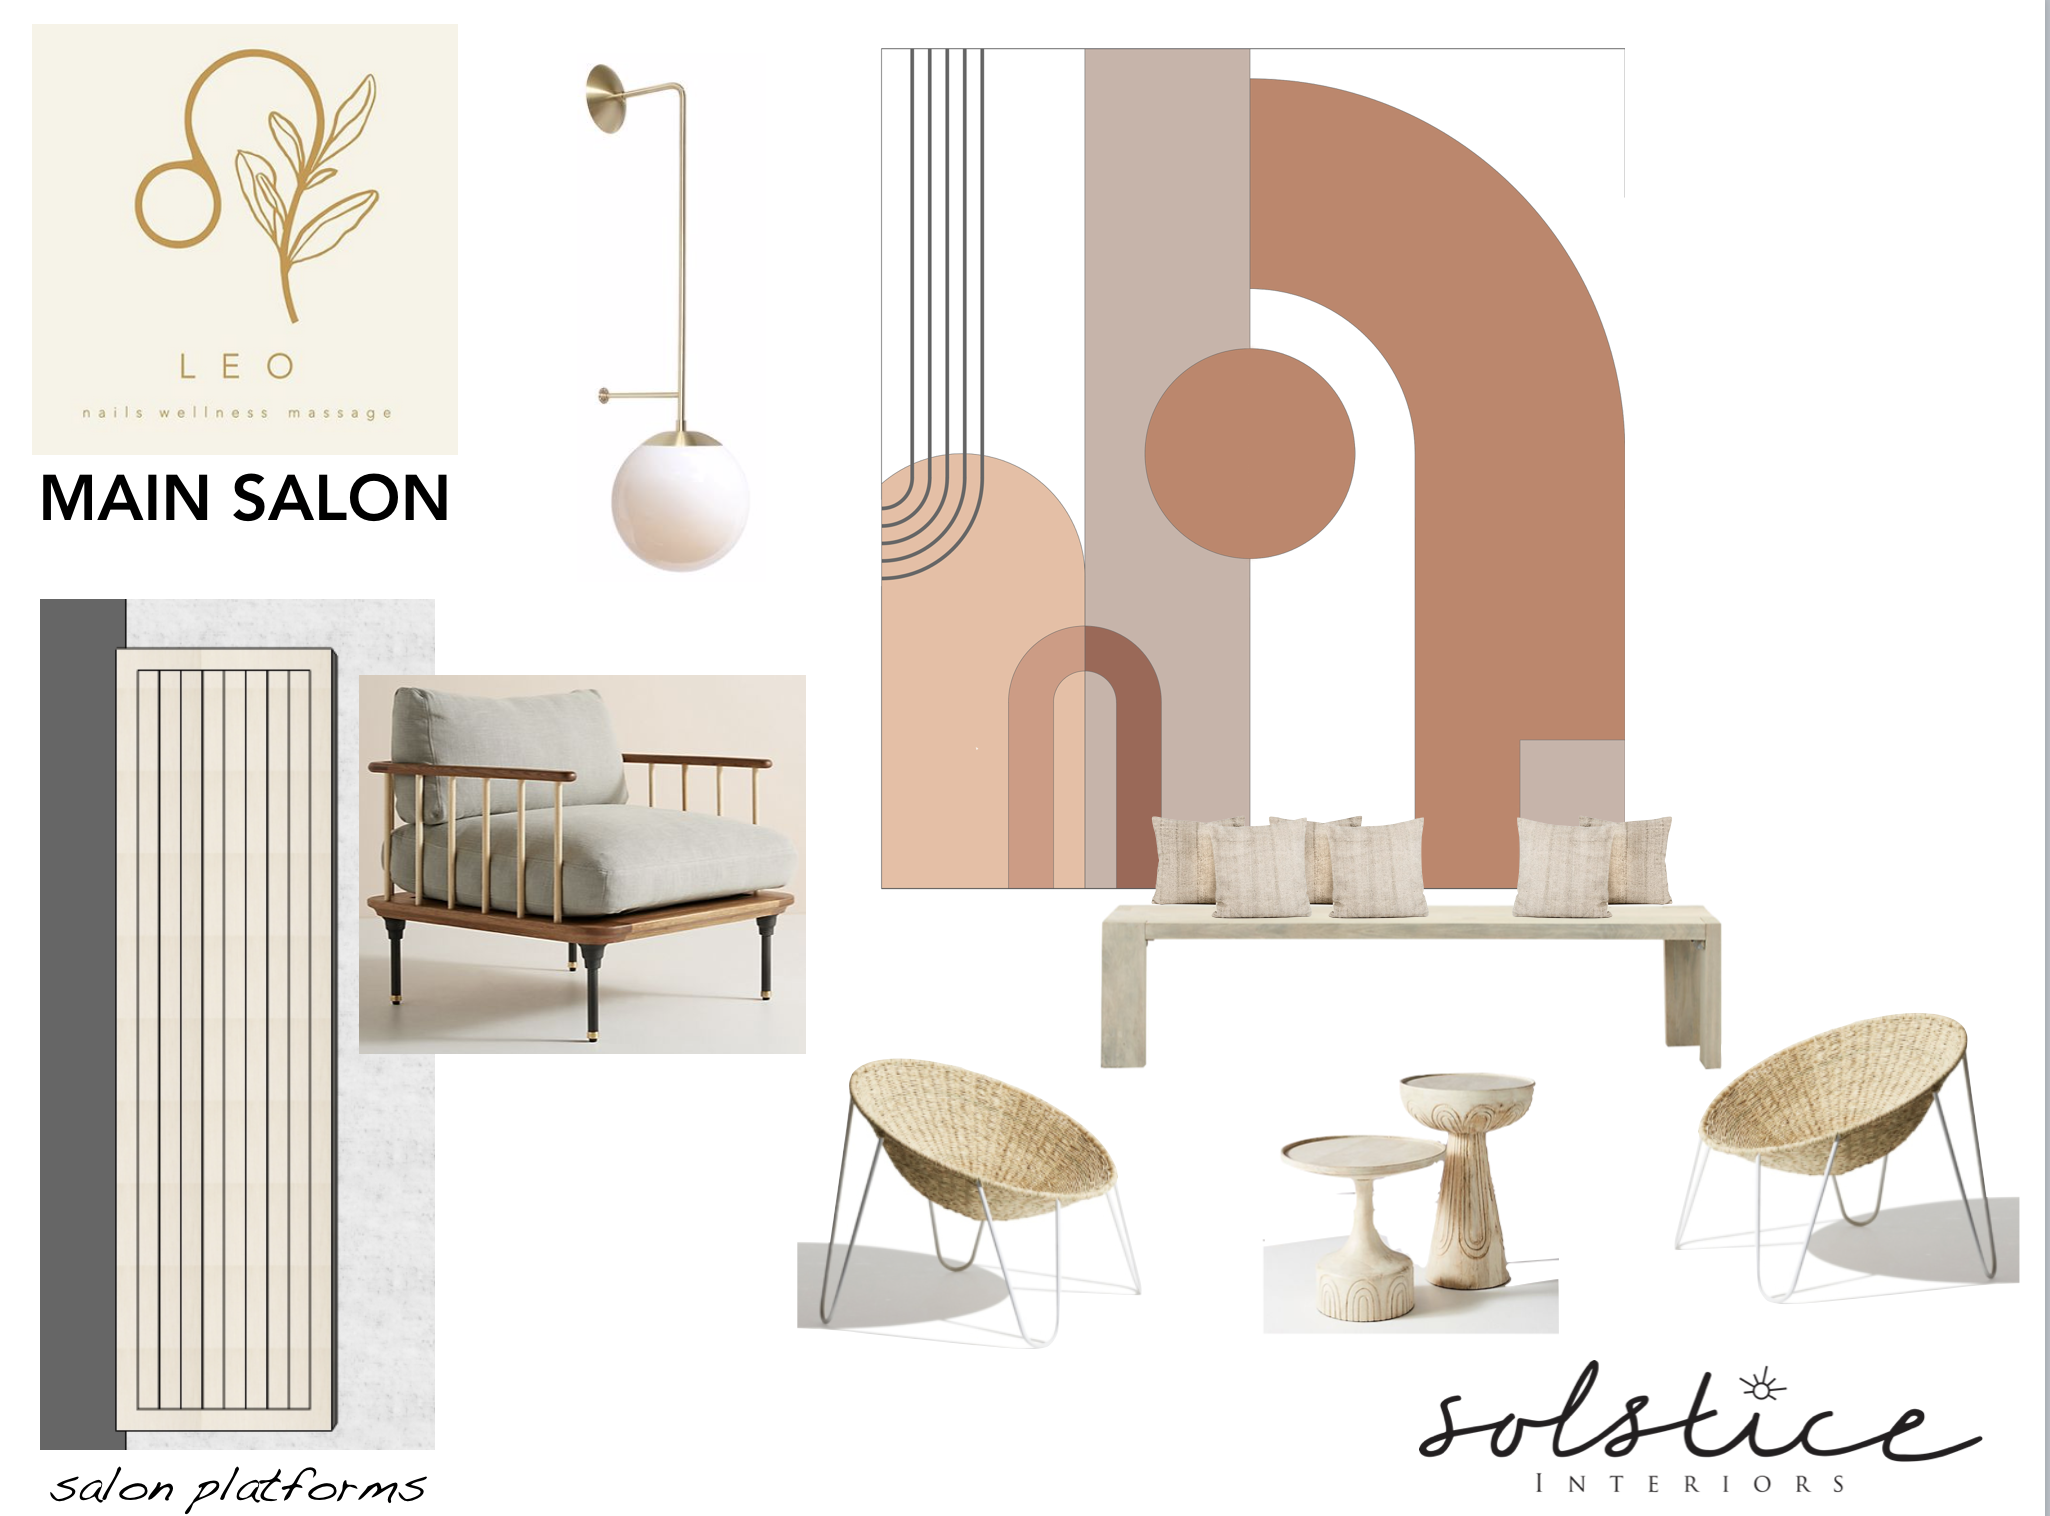 Initial concept board for Leo's main salon, including the pedicure chairs that line each wall and one of the lounge areas.